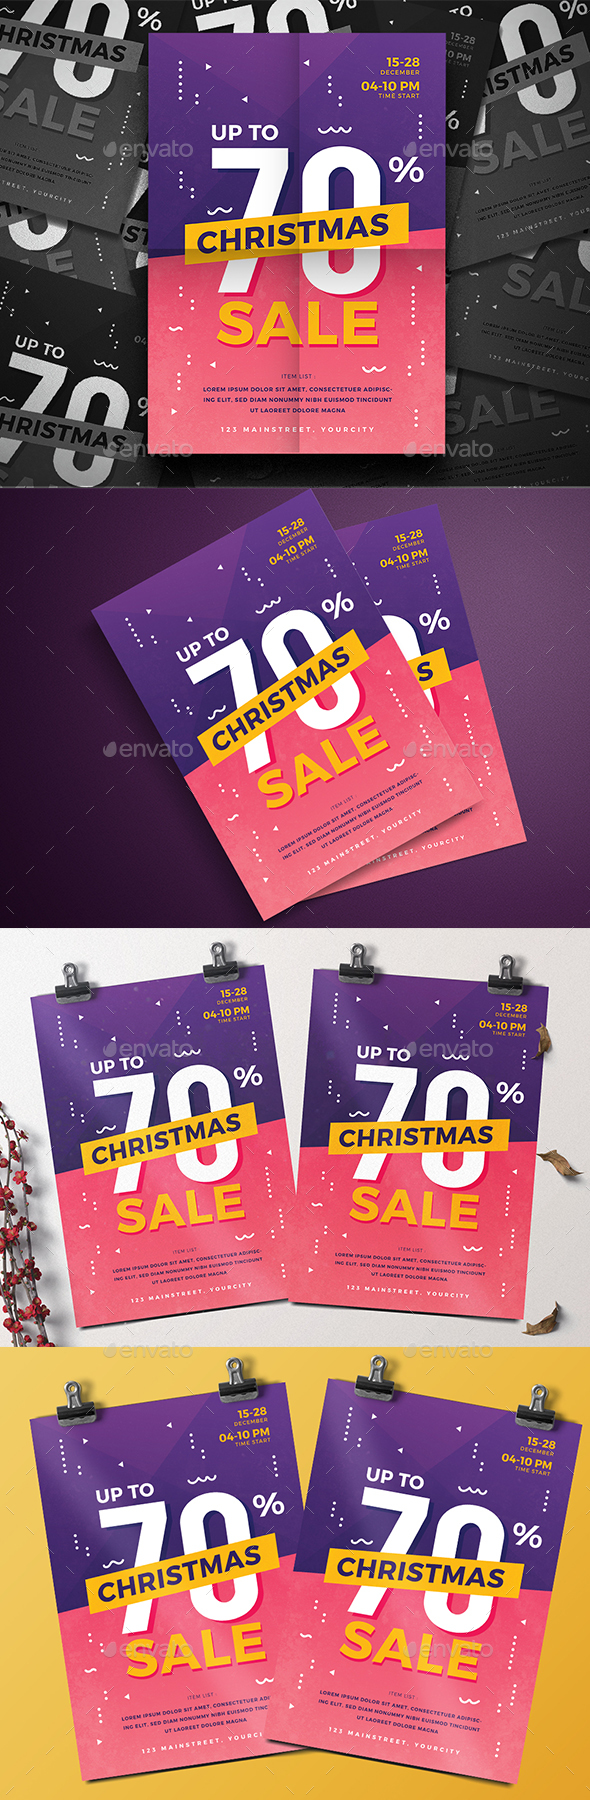 GraphicRiver Christmas Sale Flyer 21122532